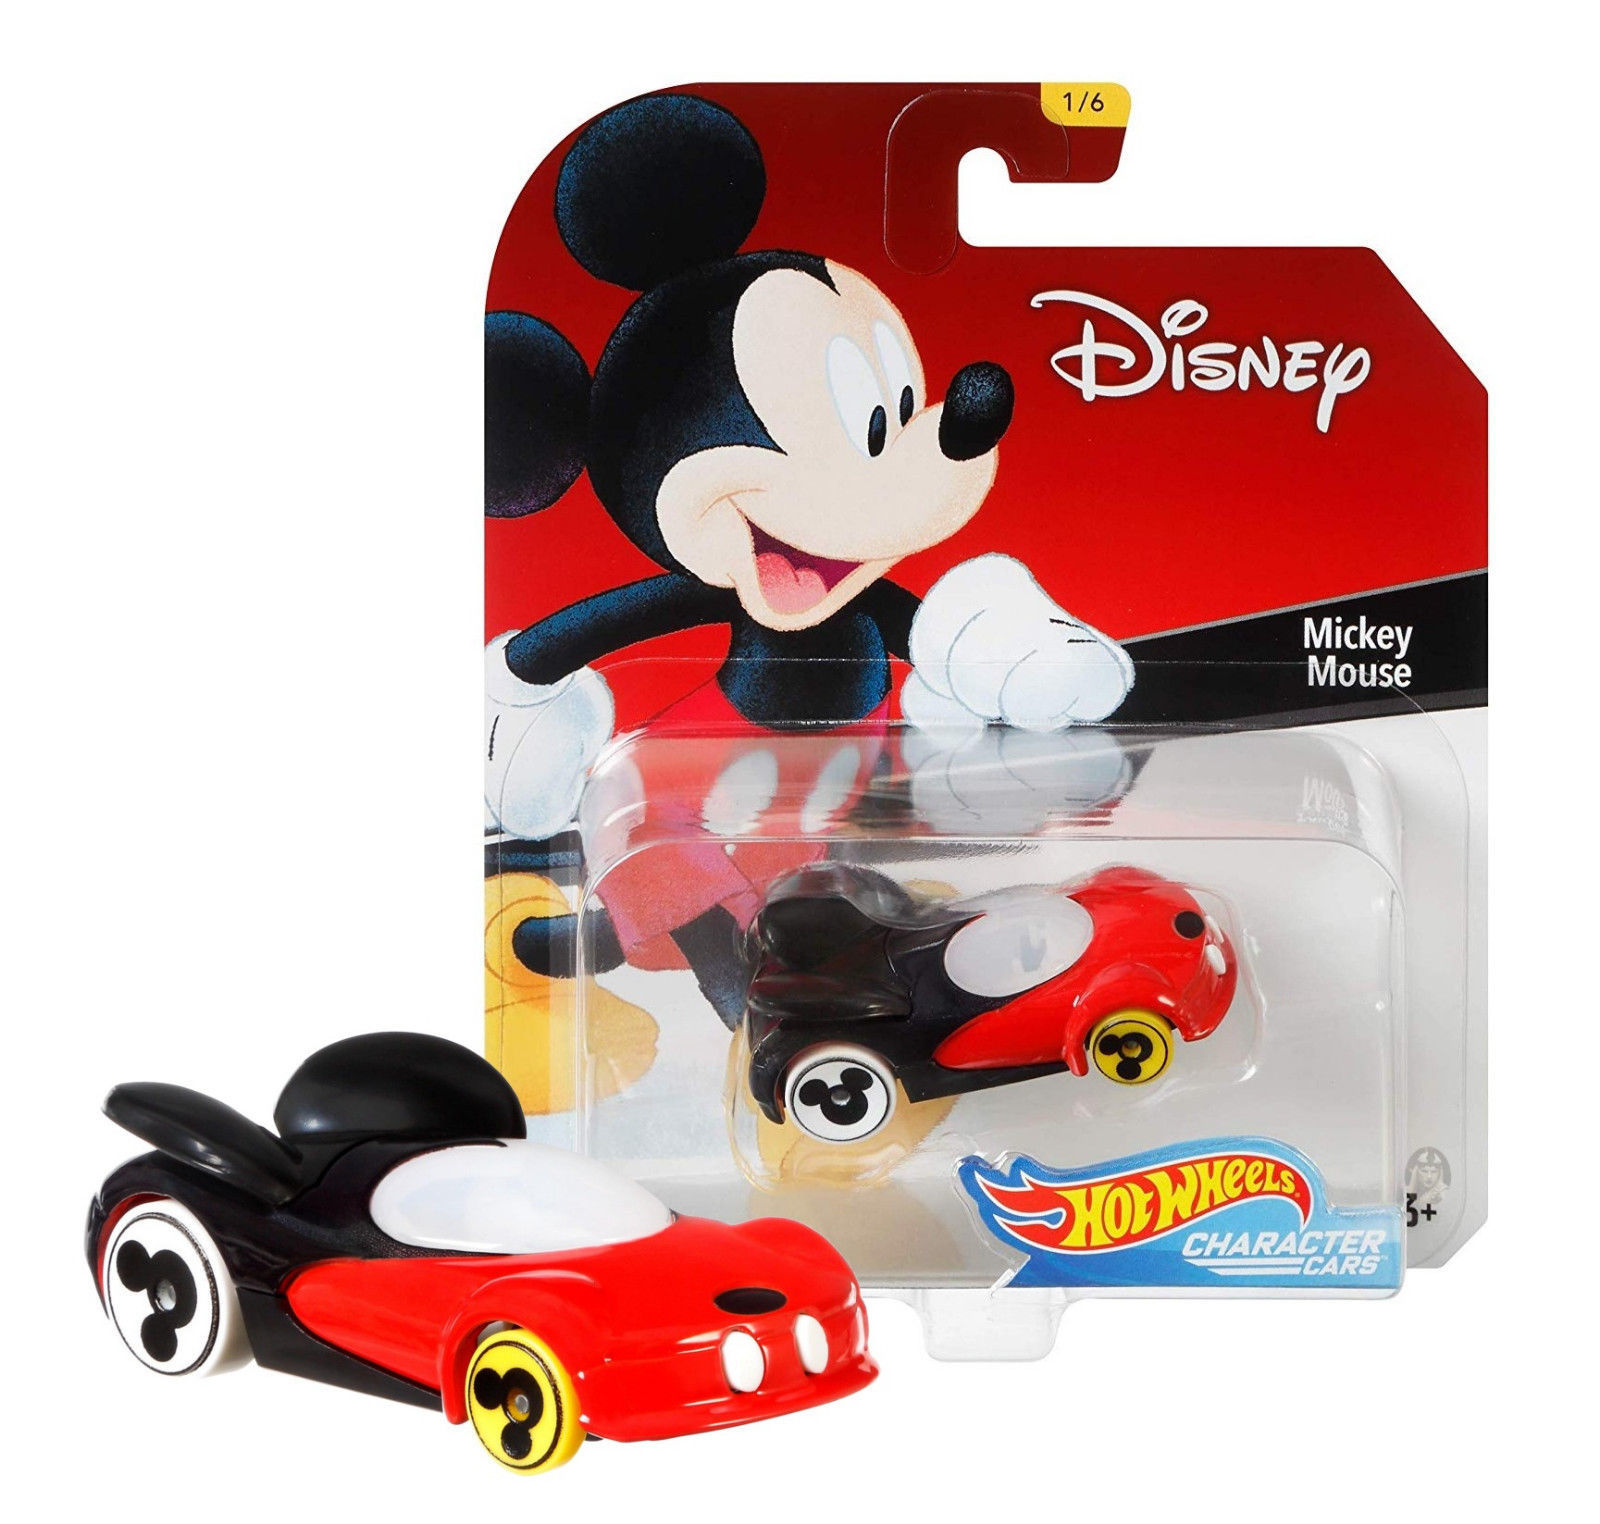 Hot Wheels Mickey Mouse Character Cars Series 1 1/6 Mint on Card